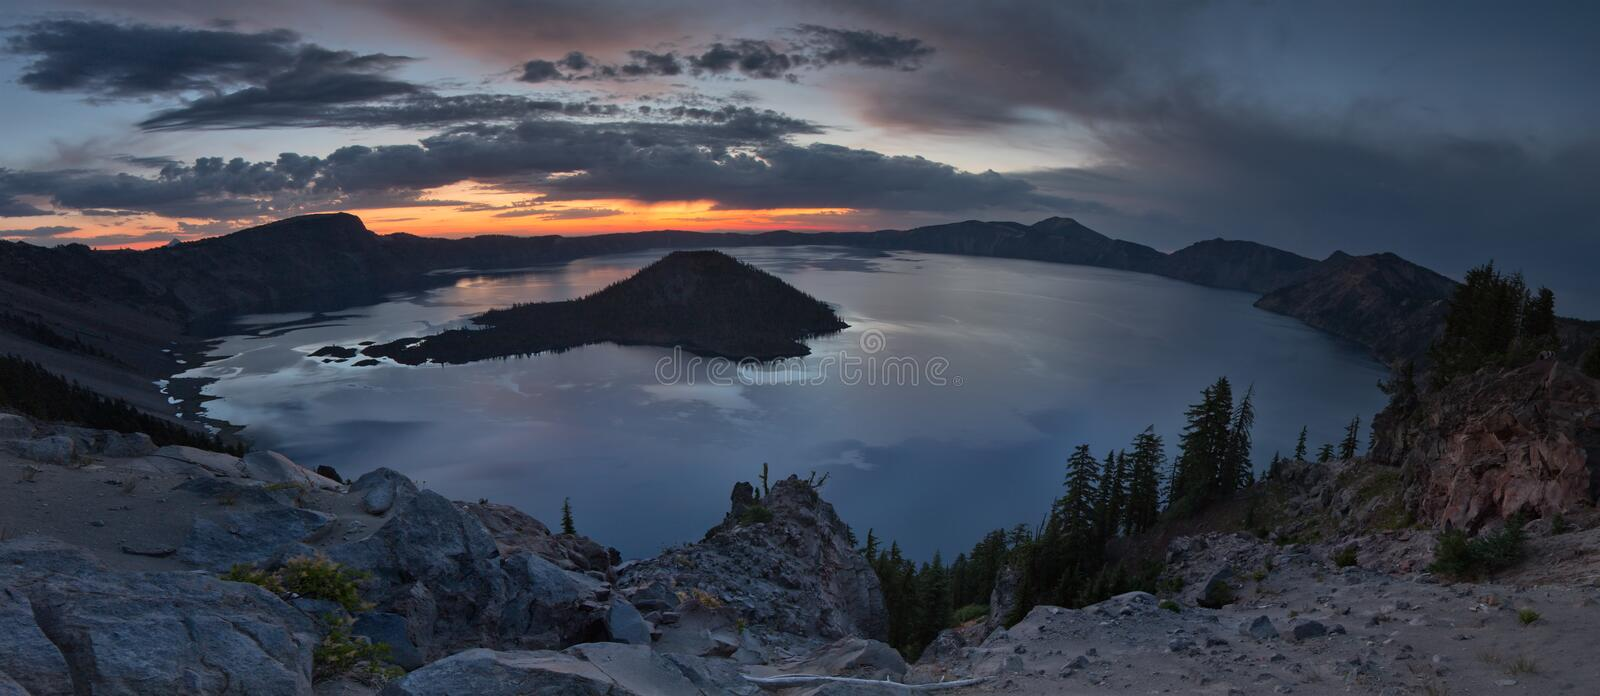 Crater Lake. National park oregon royalty free stock images